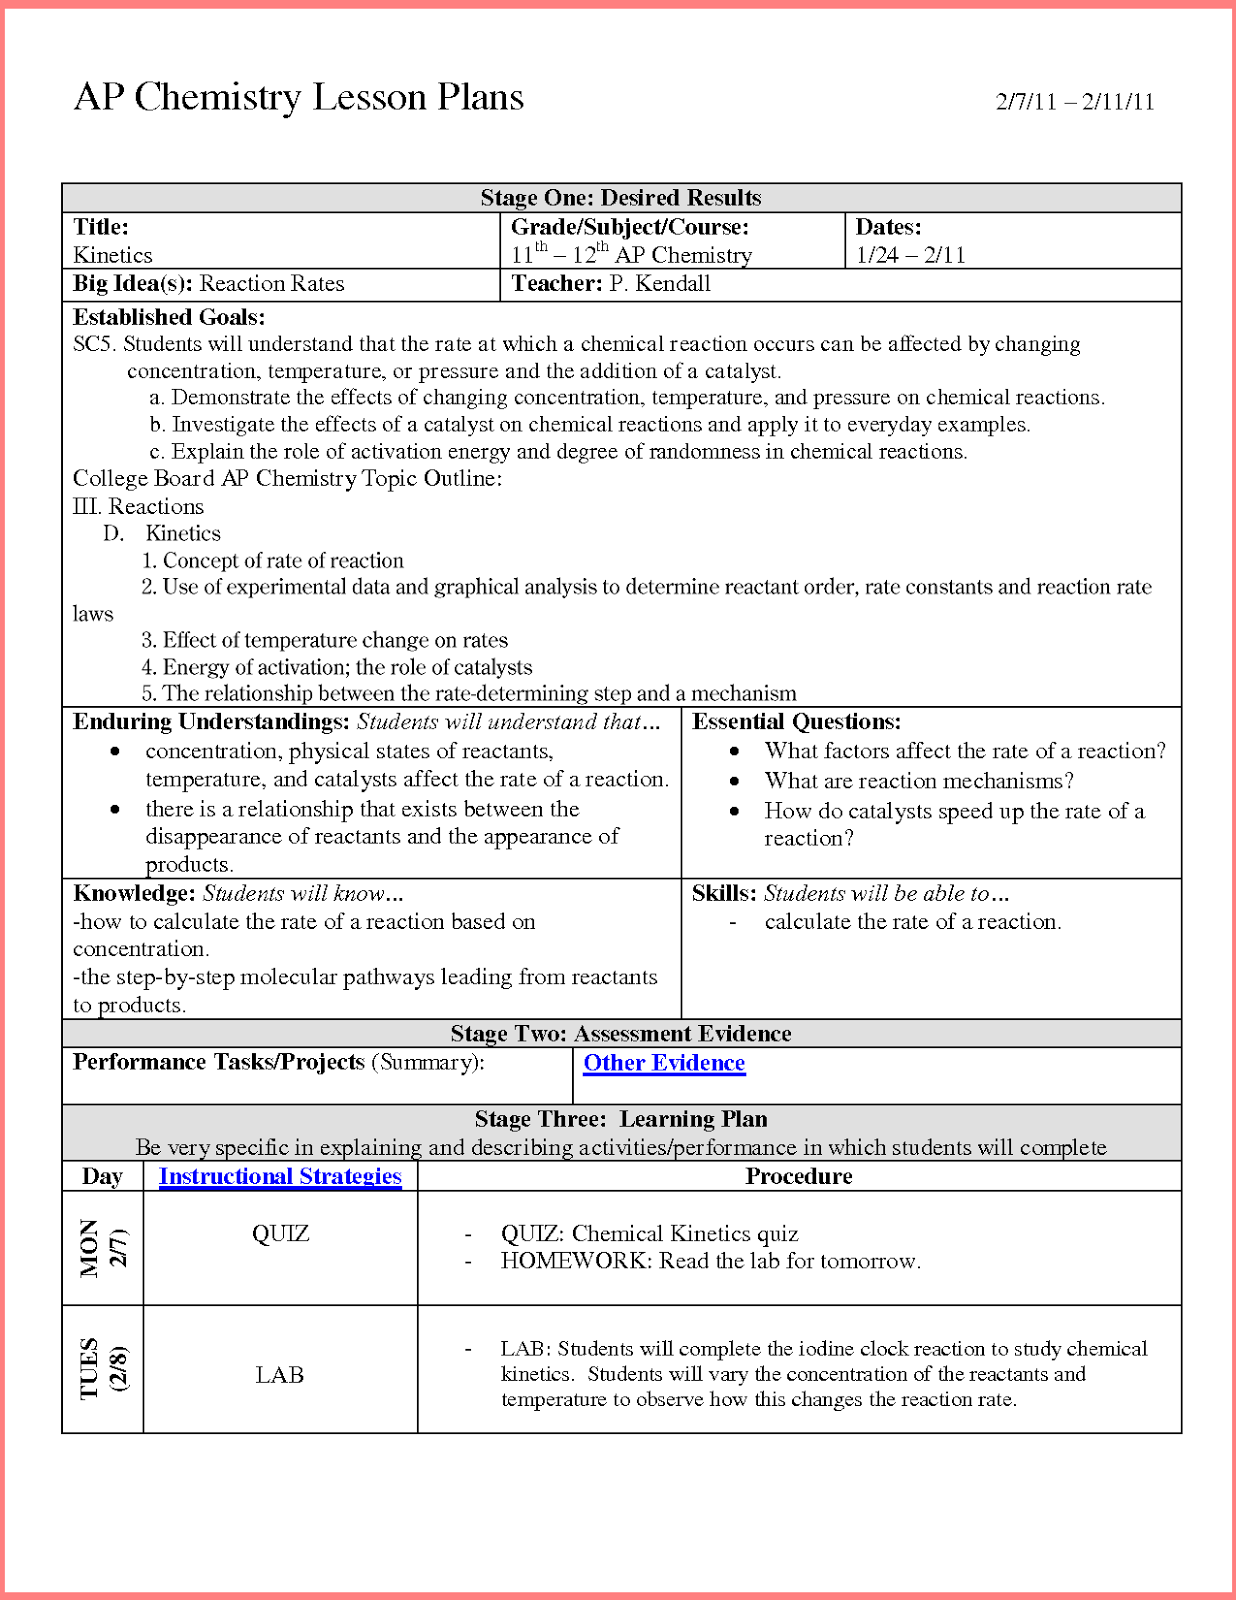 resume templates google professional resume templates from google docs backward design lesson plan template 2 resume